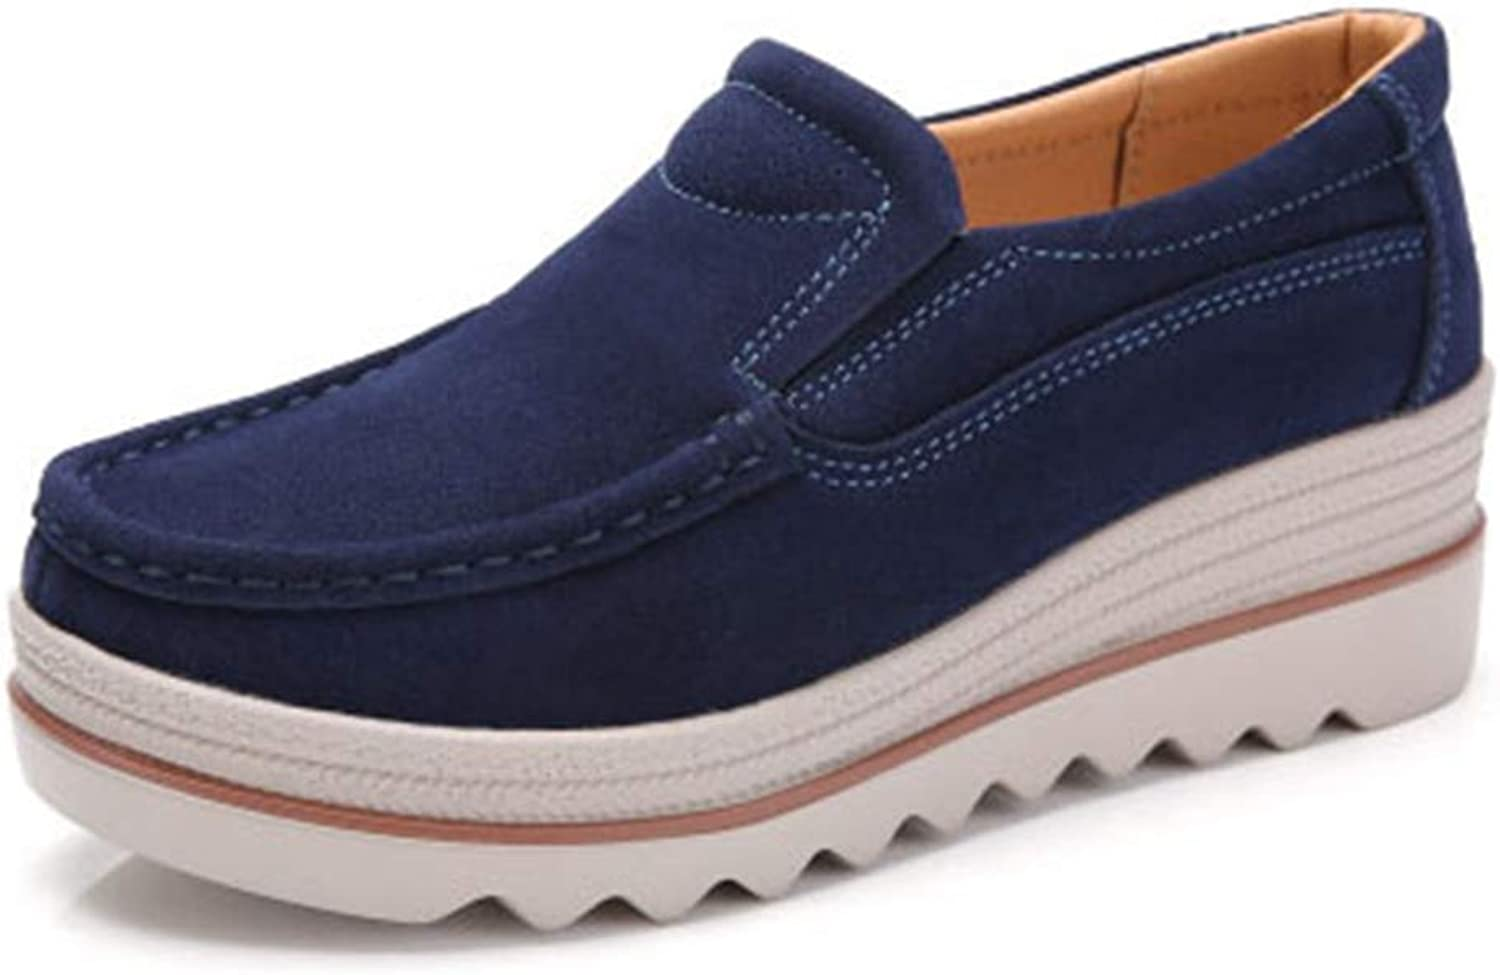 GIY Women's Suede Platform Slip-On Oxford shoes Comfortable Chunky High Heel Casual Work Oxfords Loafers